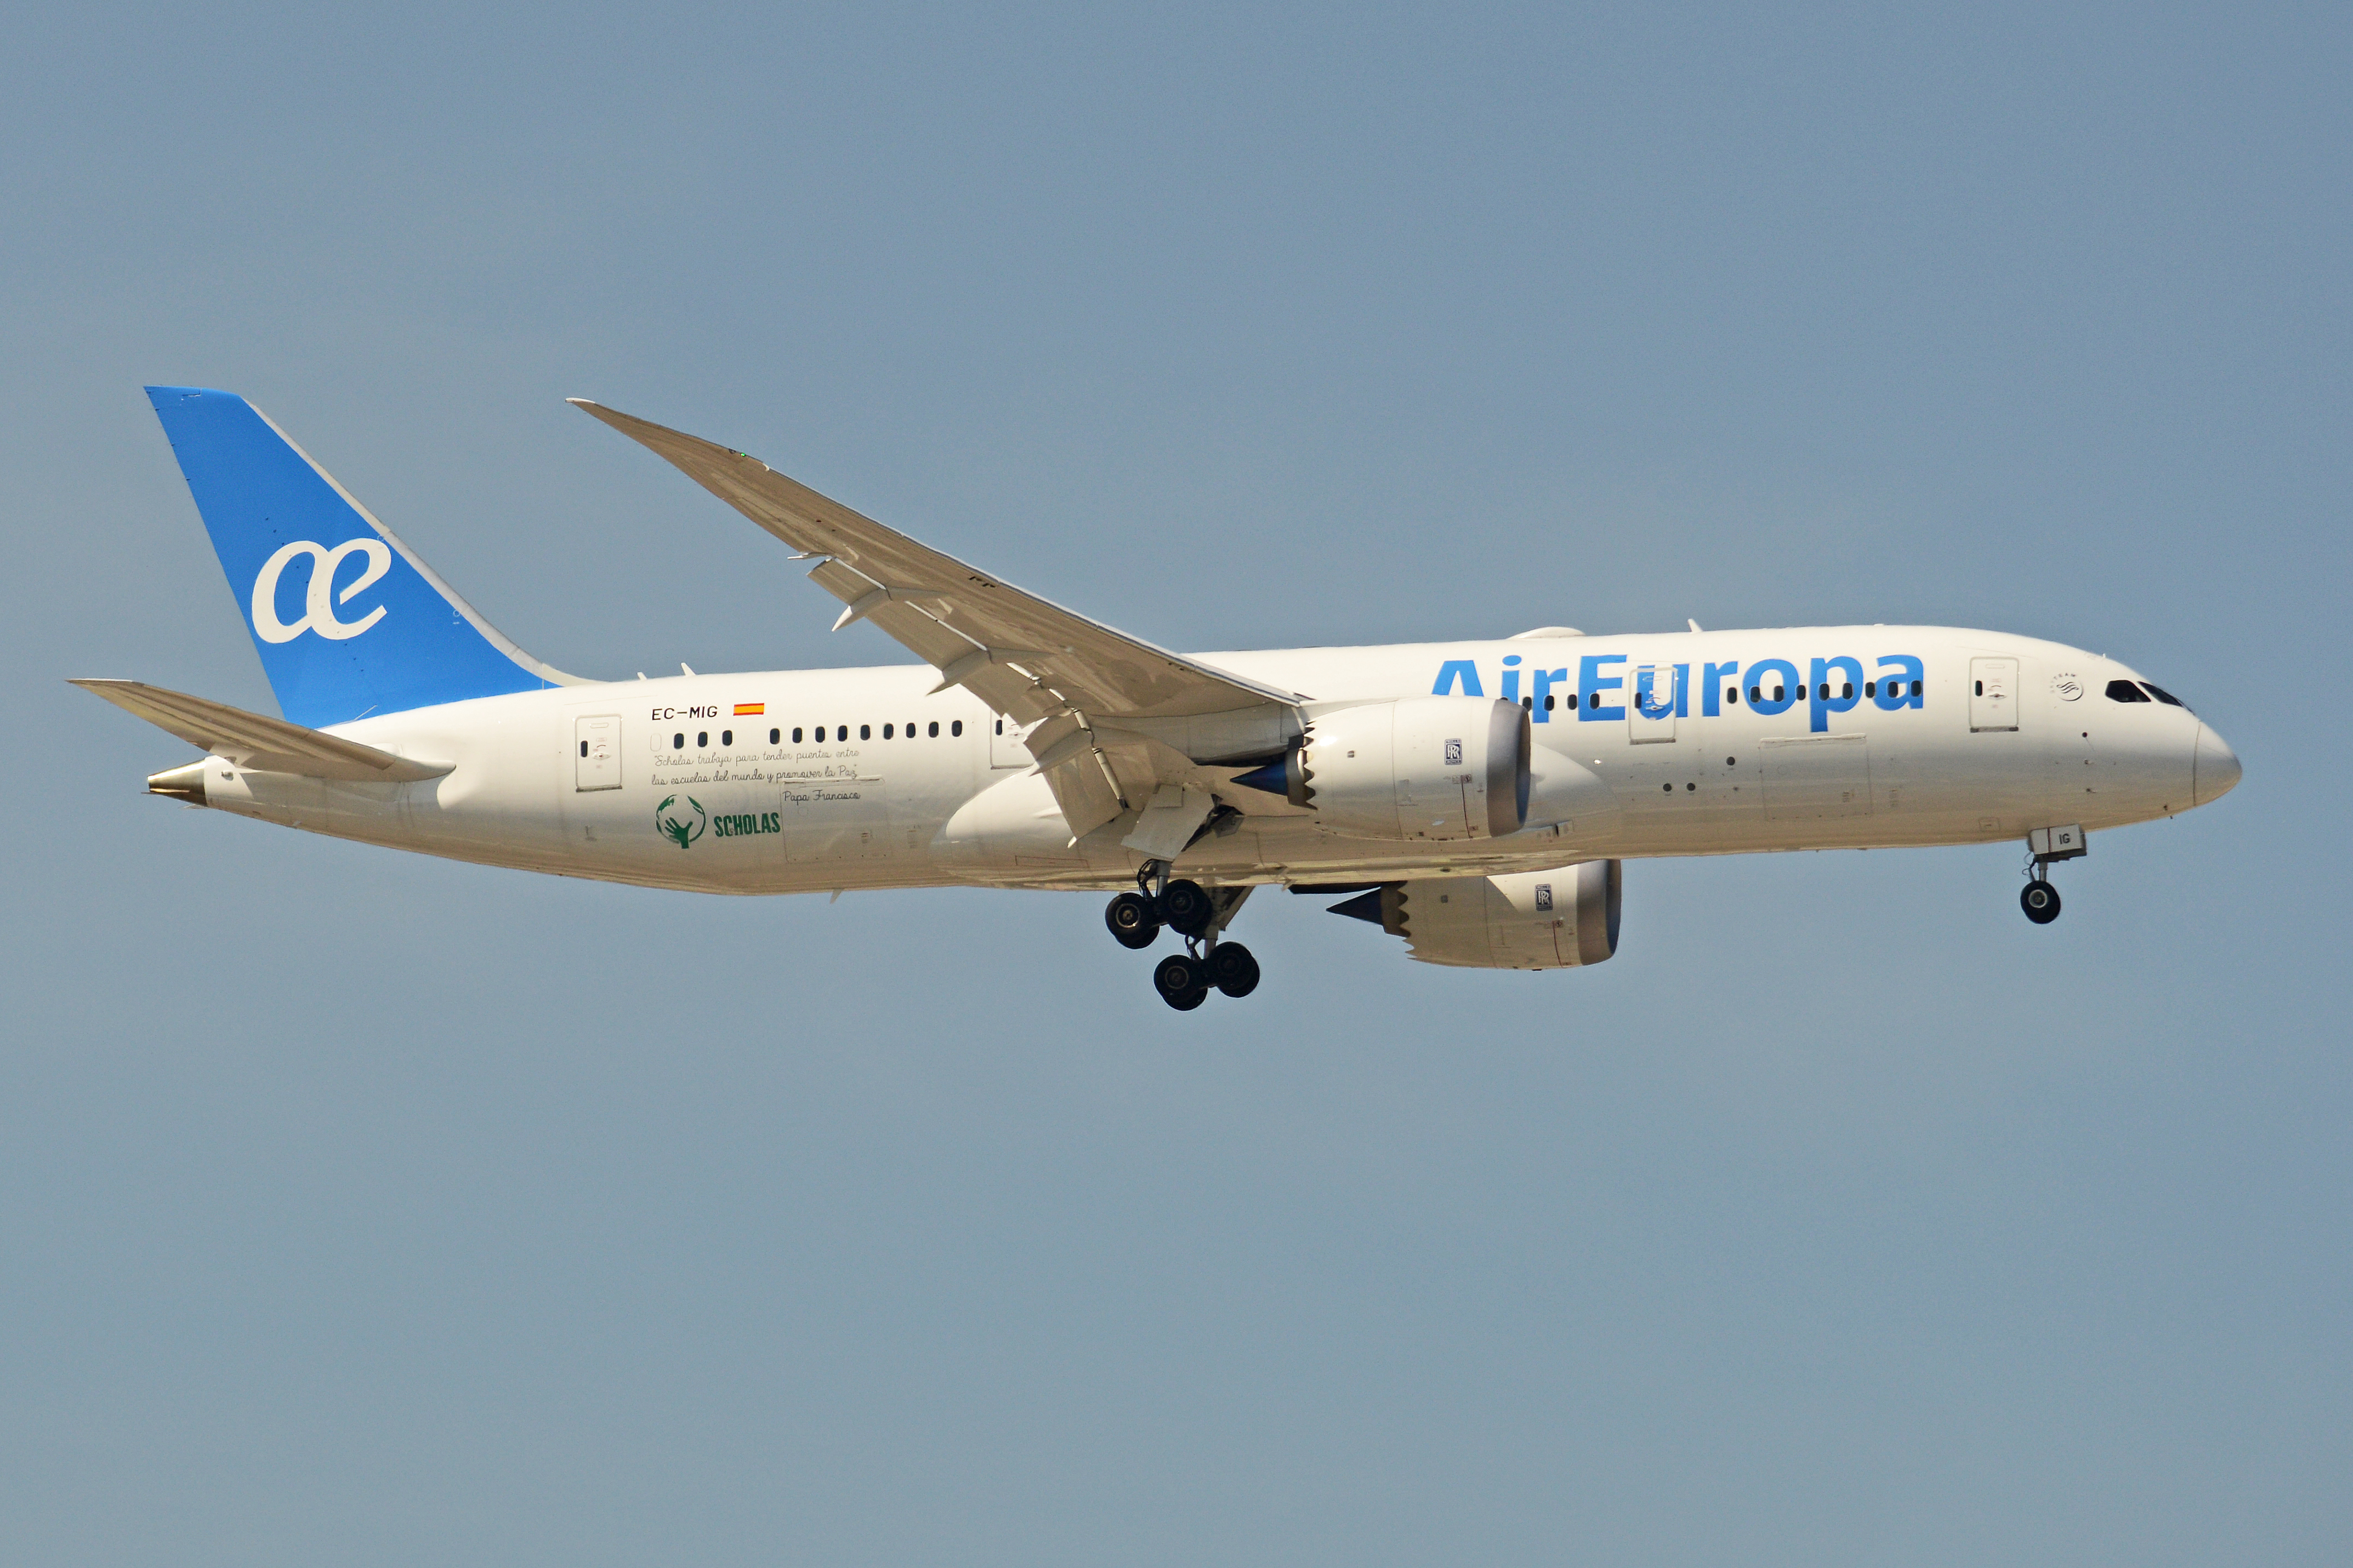 Air Europa Wikipedia La Enciclopedia Libre